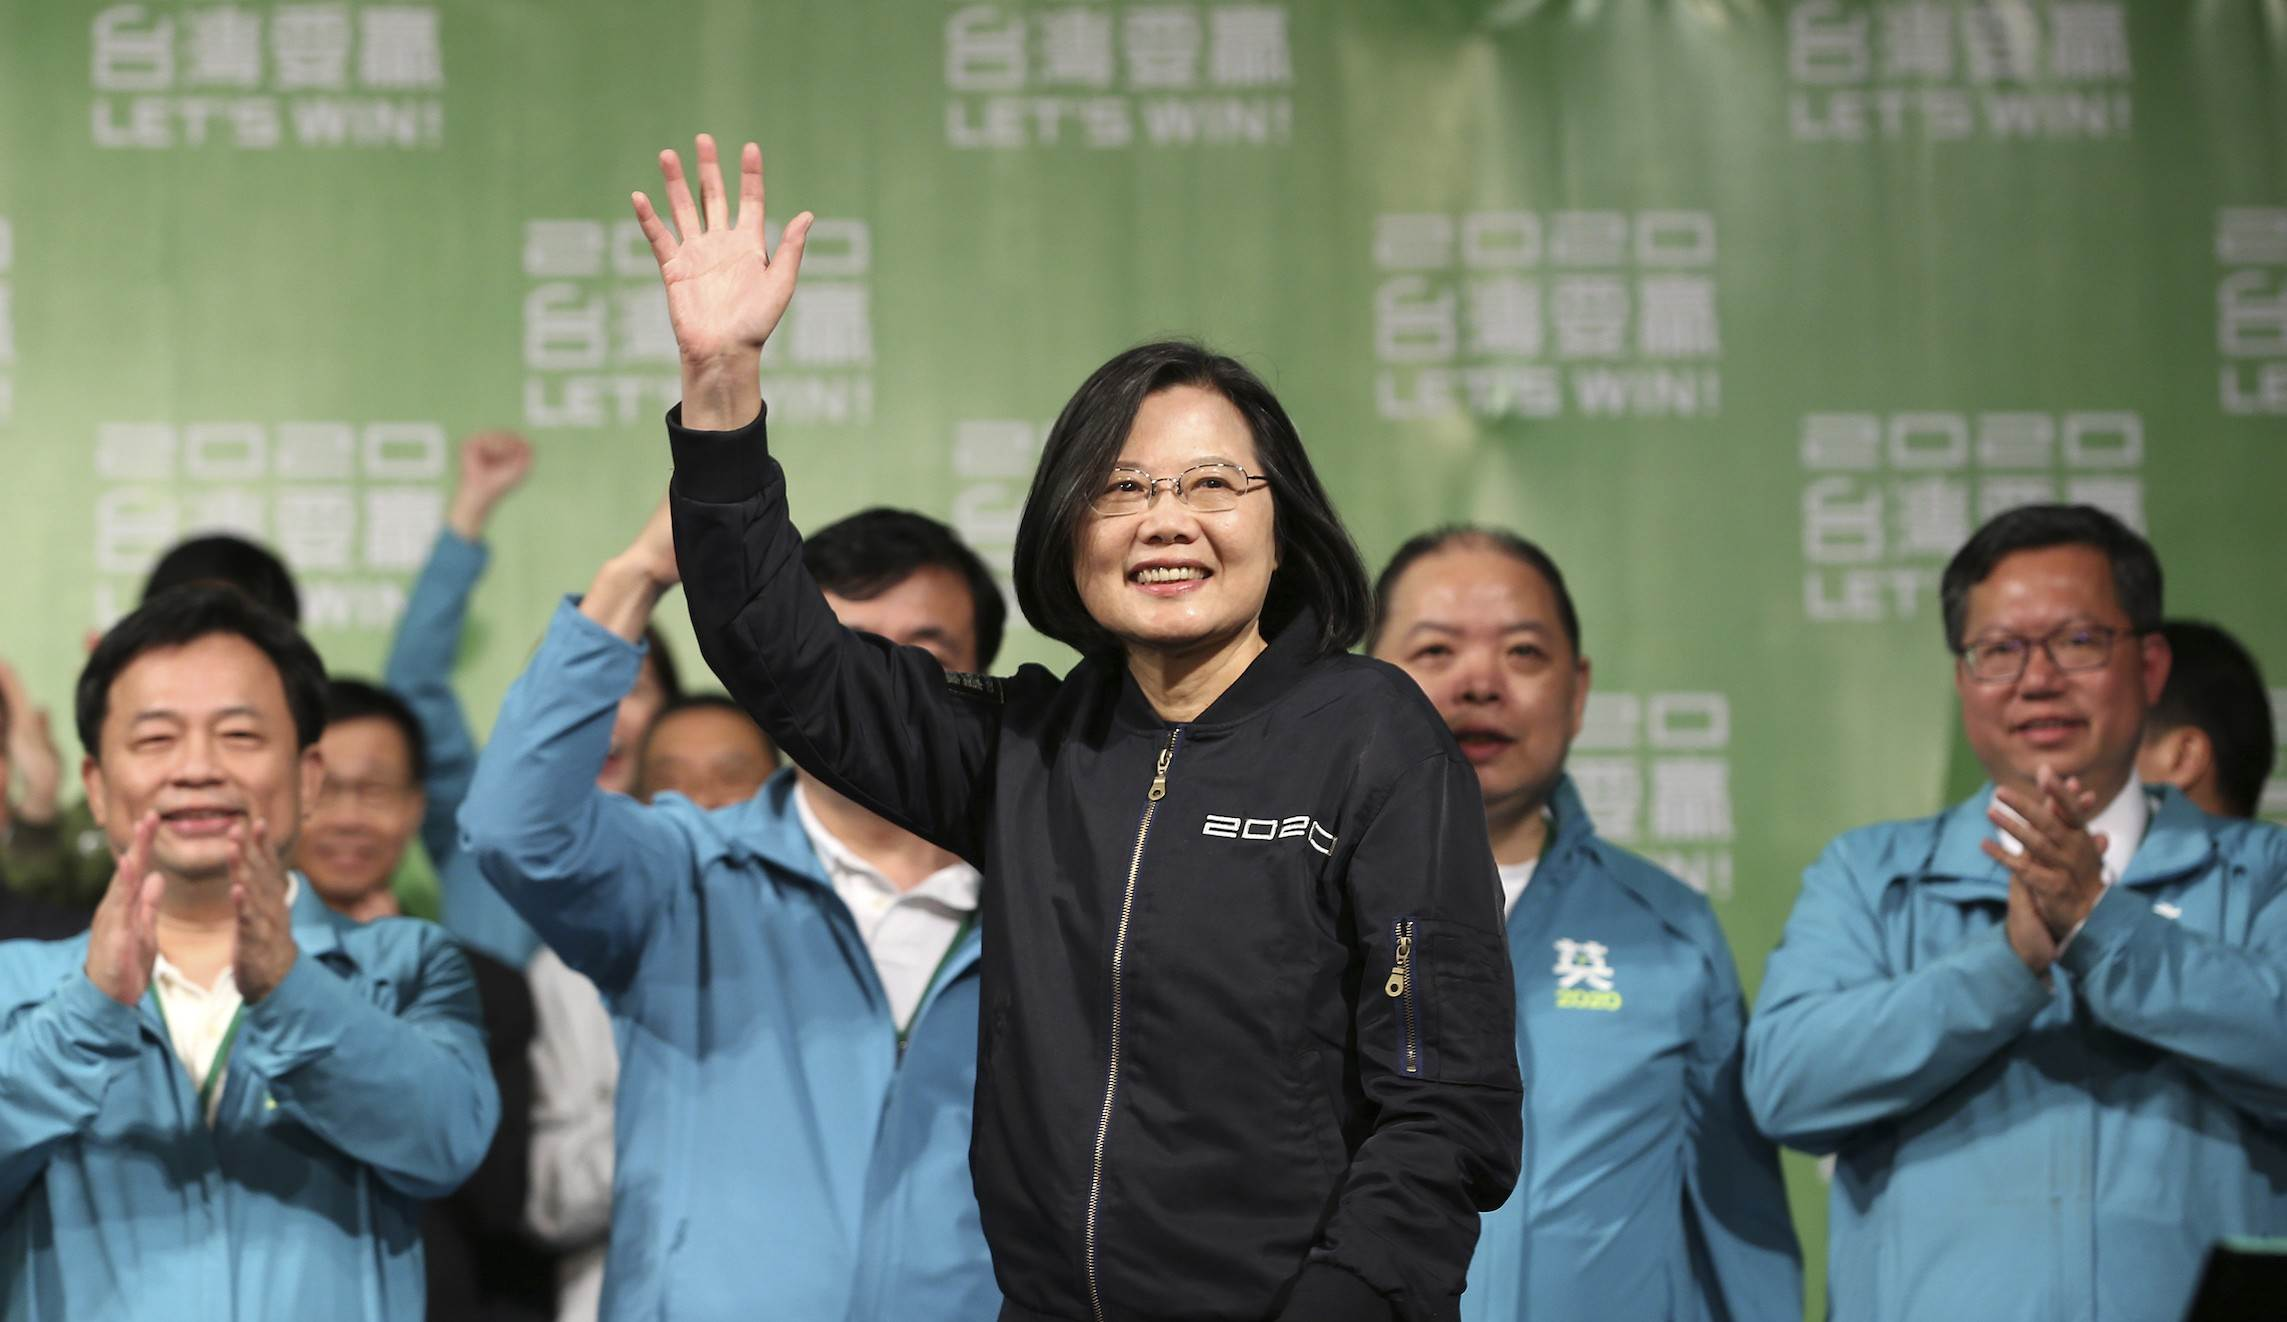 INSIDE STORY: TAIWAN'S ELECTIONS